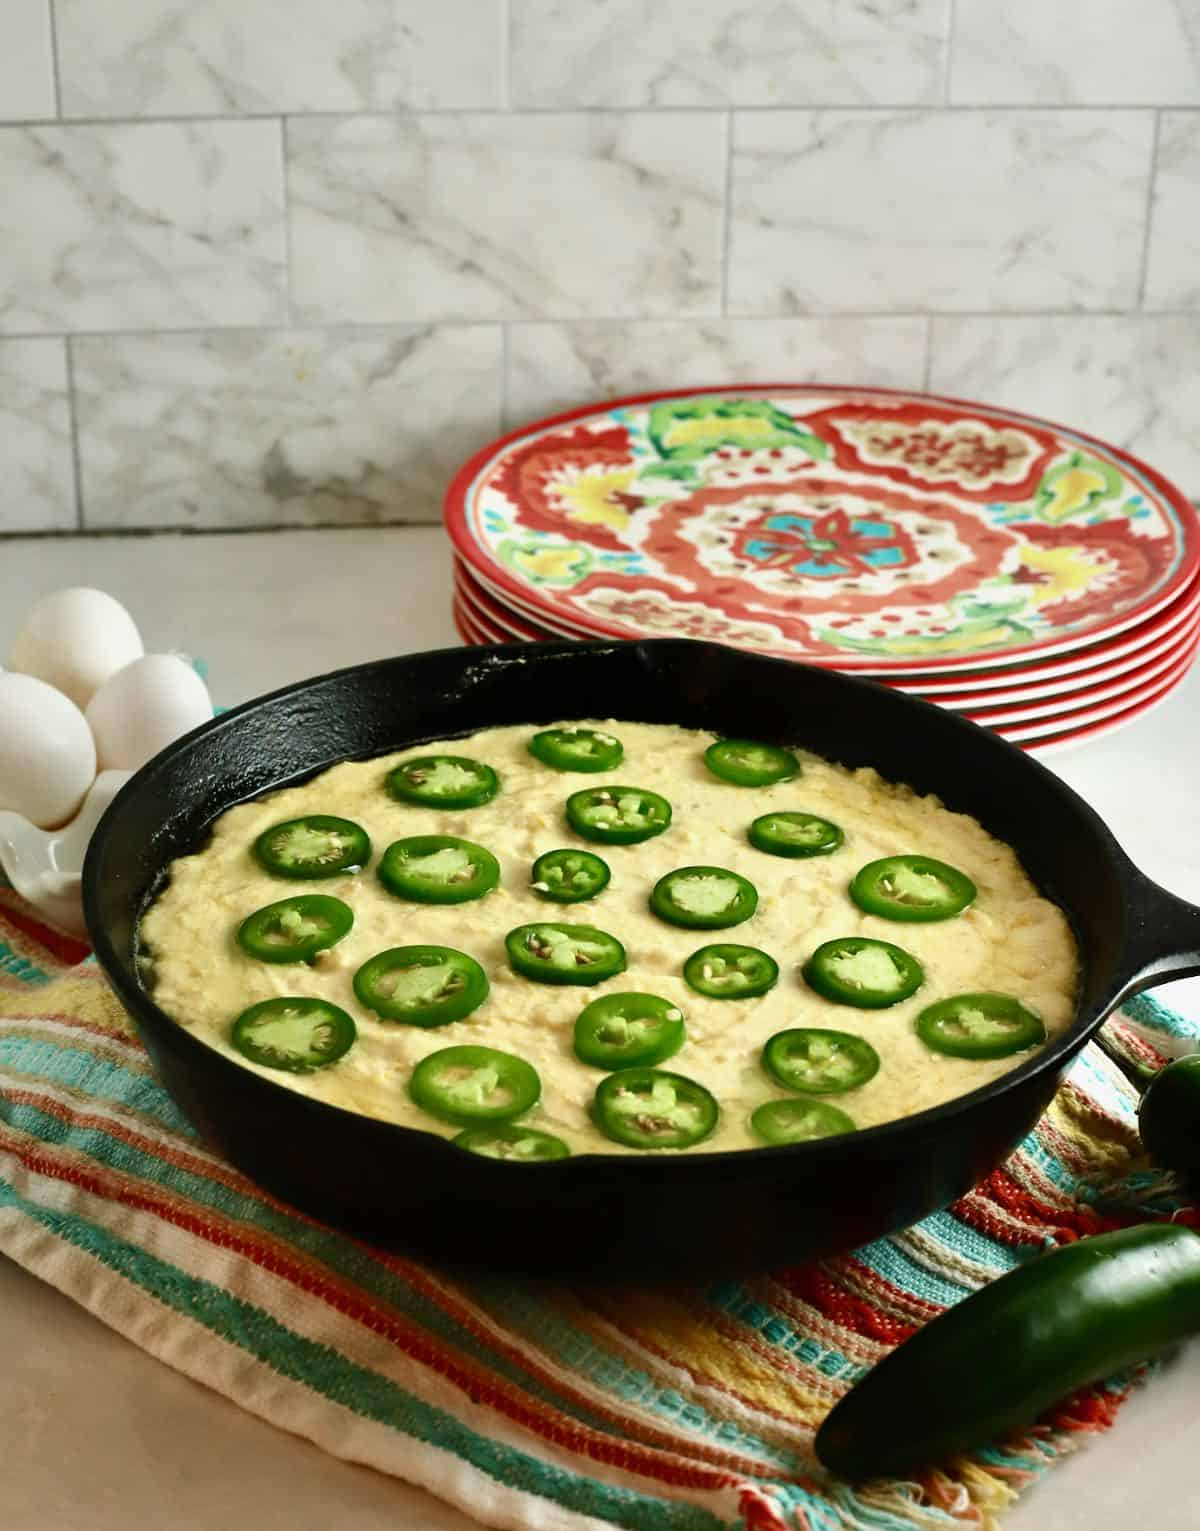 Cornbread batter topped with jalapeno slicess in a cast-iron skillet, ready for the oven.